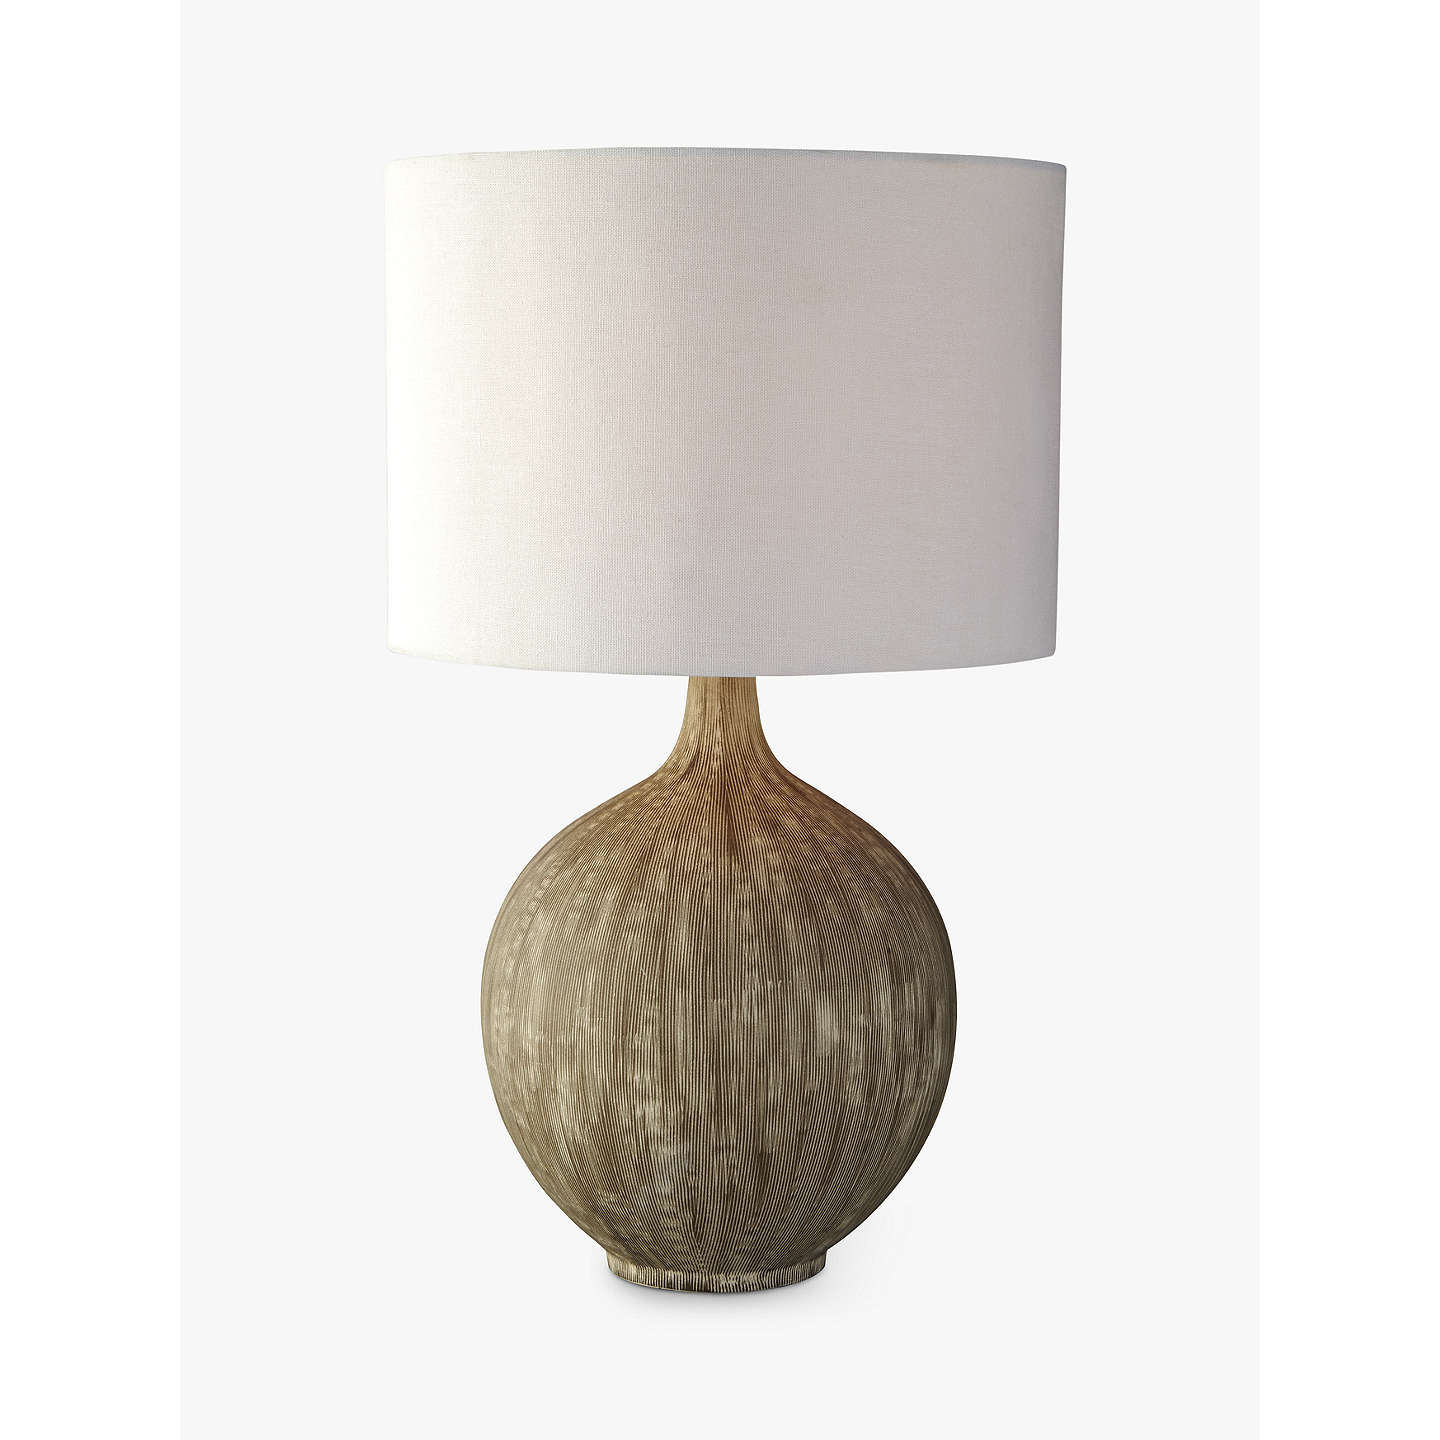 John lewis ebony table lamp large at john lewis for Table lamp shades john lewis